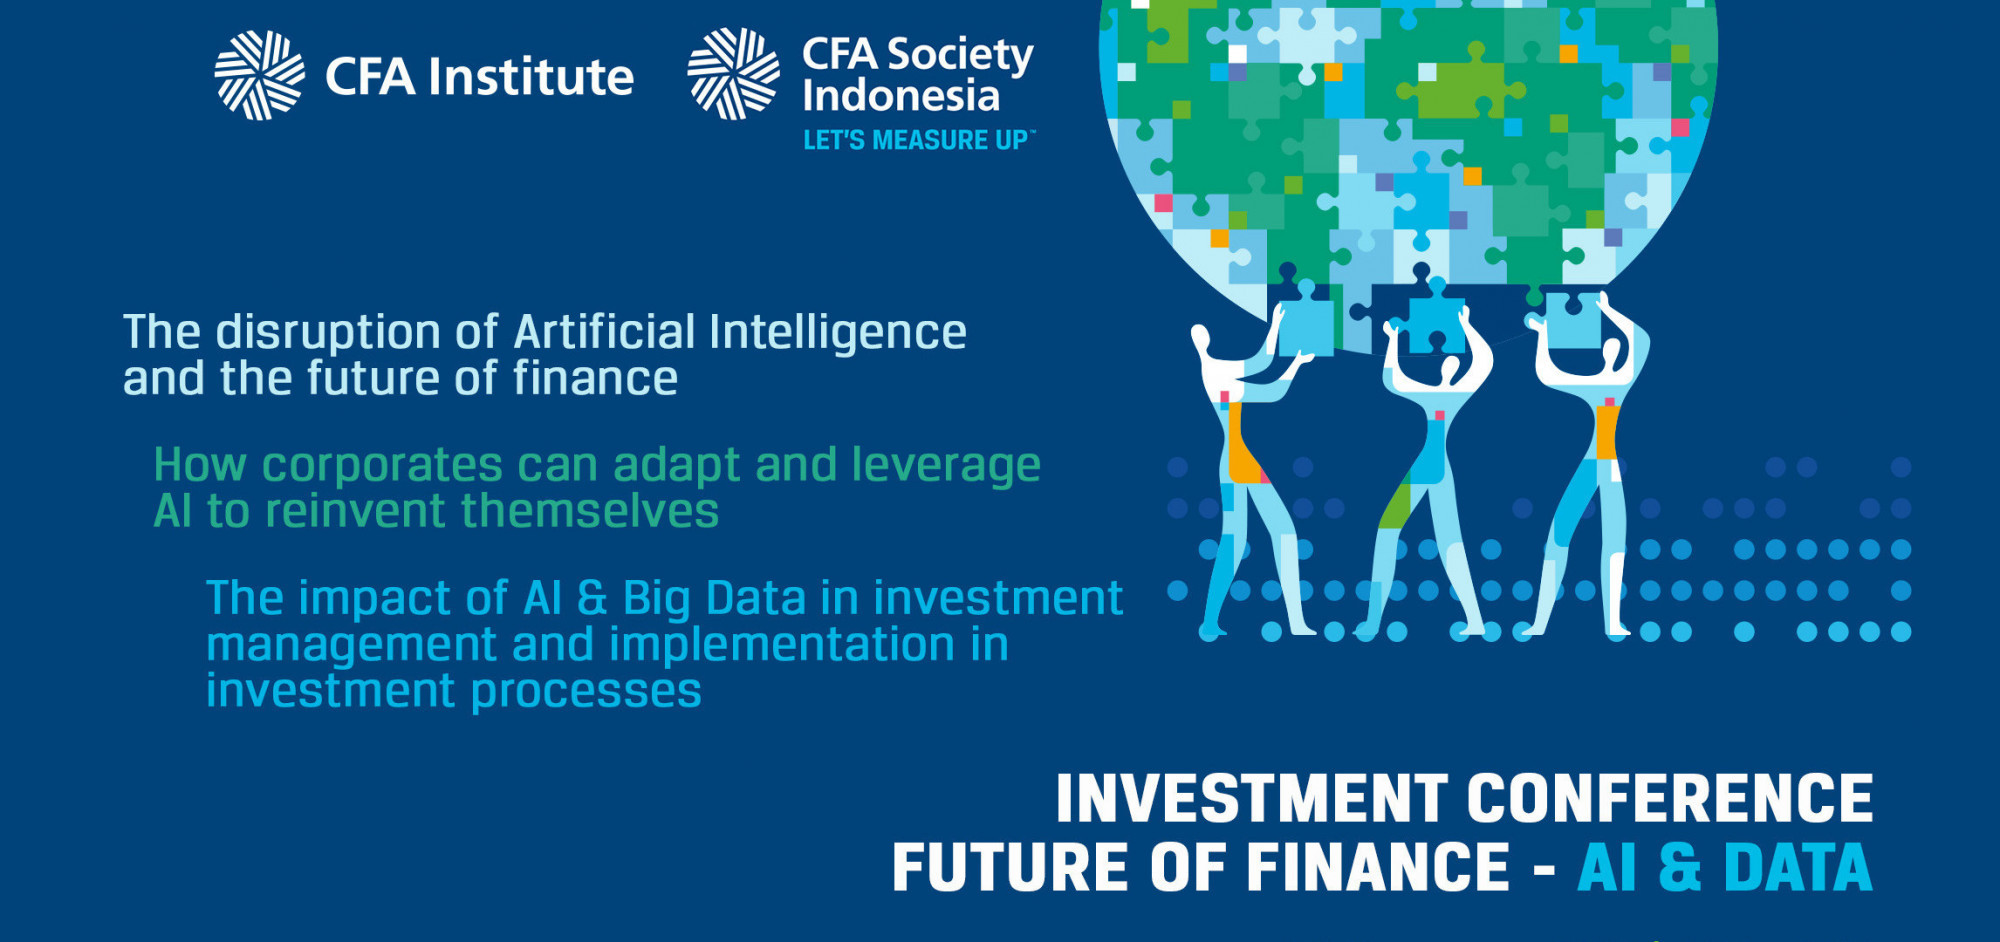 CFA Society Indonesia And CFA Institute